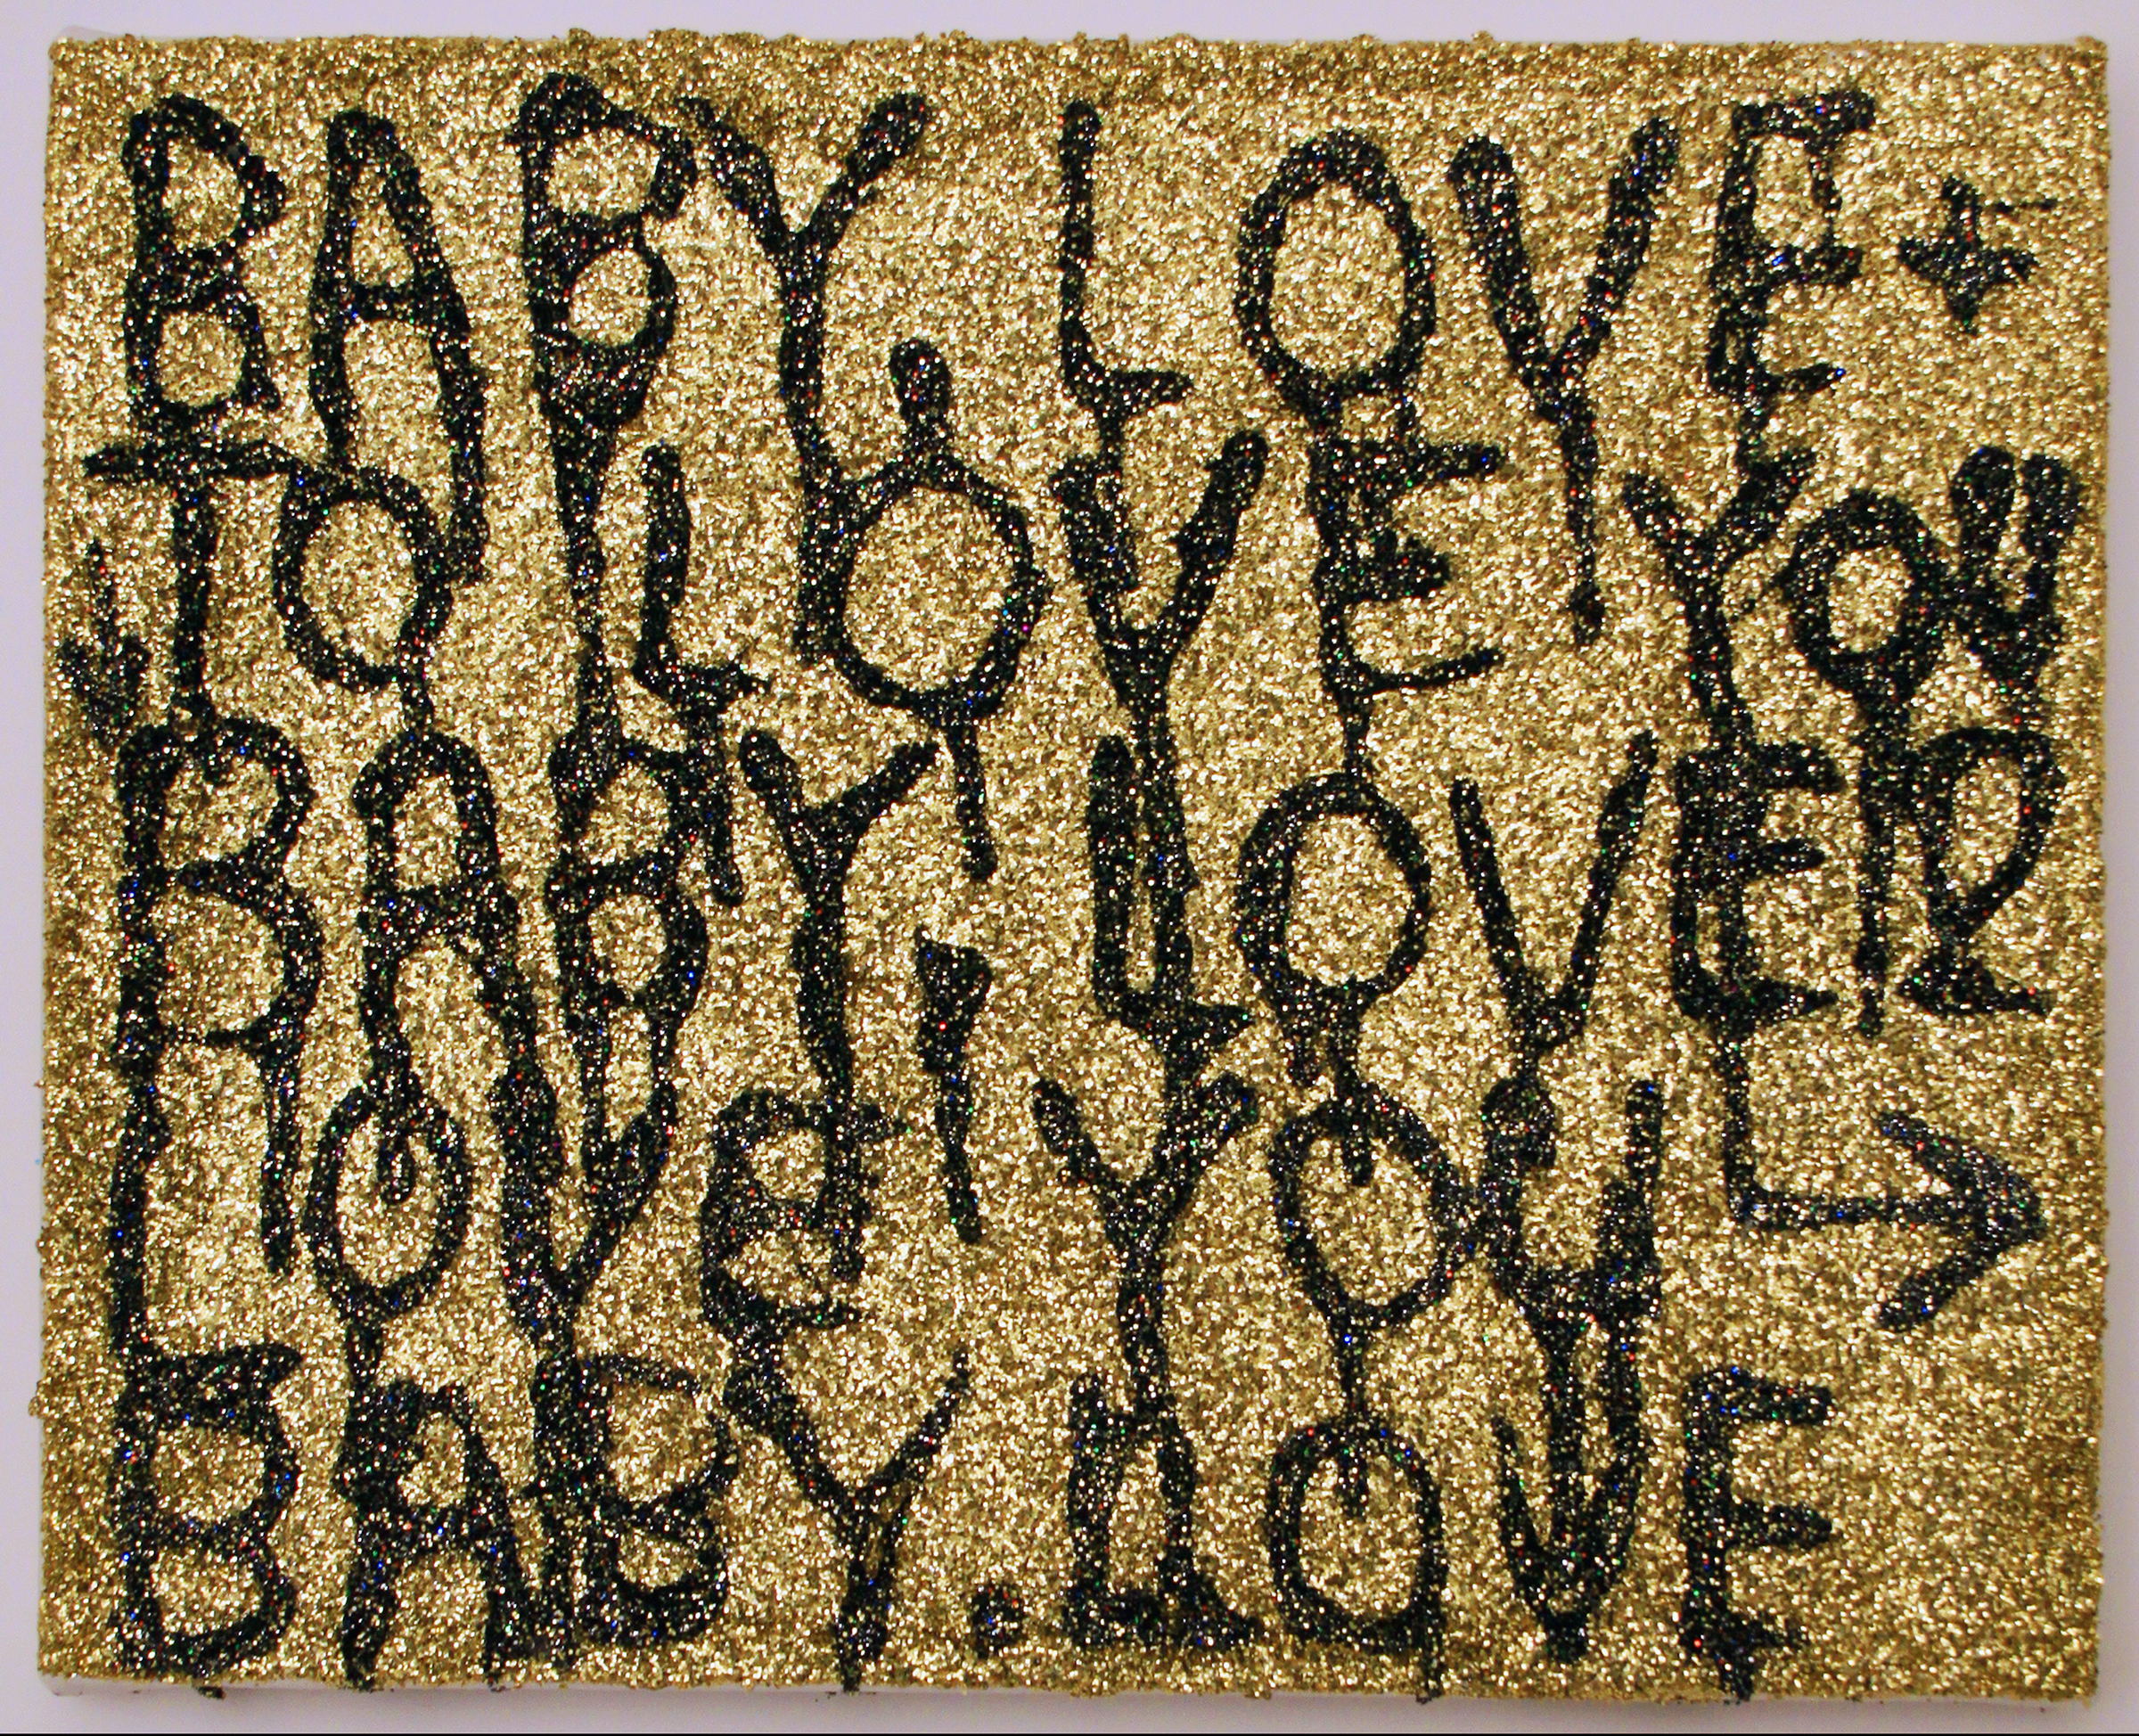 BABY, LOVE TO LOVE YOU (Gold)